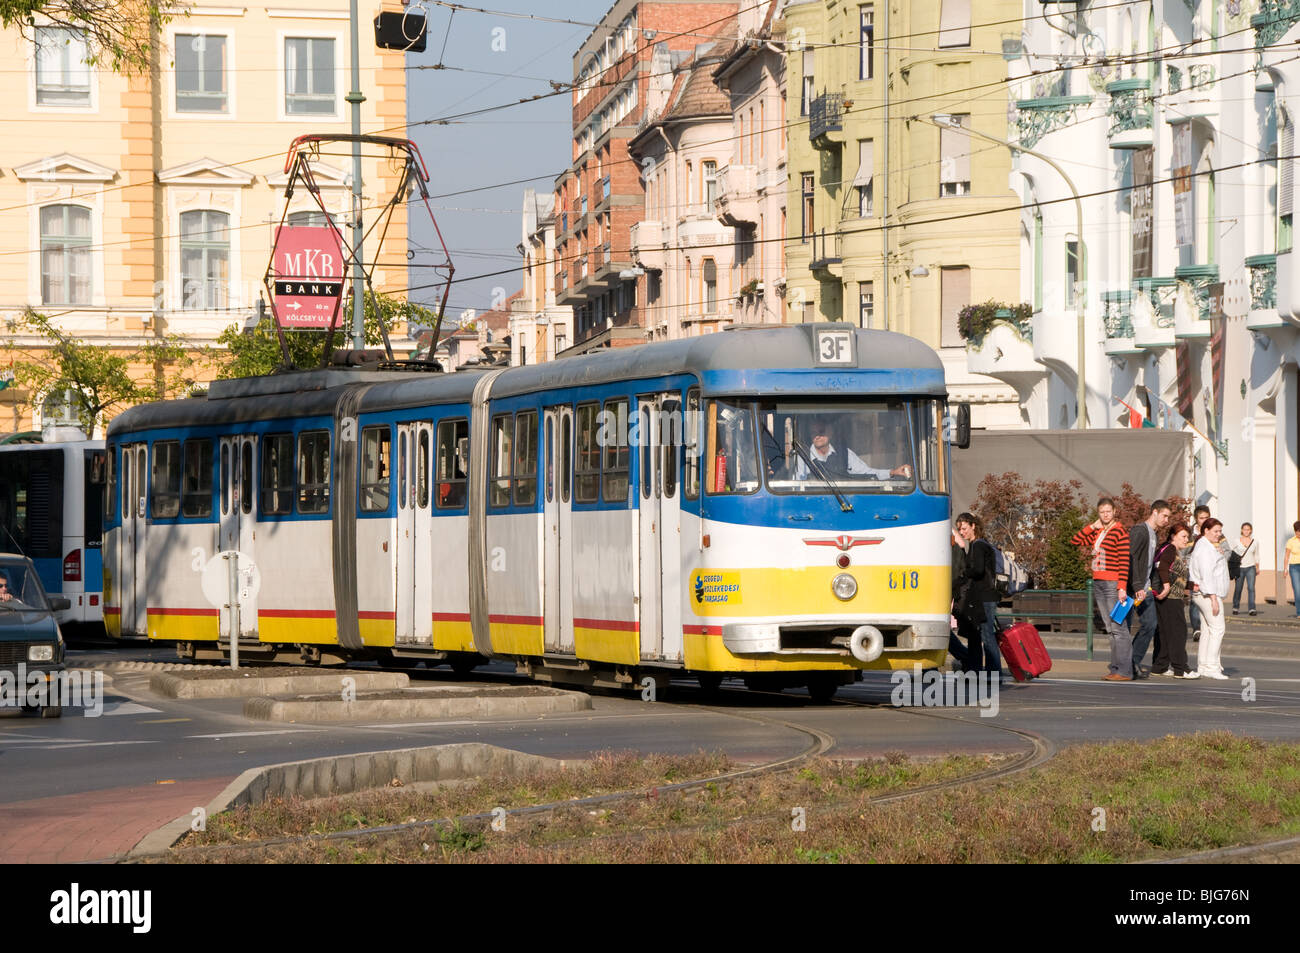 A three section articulated tram picks up passengers in Szeged, Hungary Stock Photo